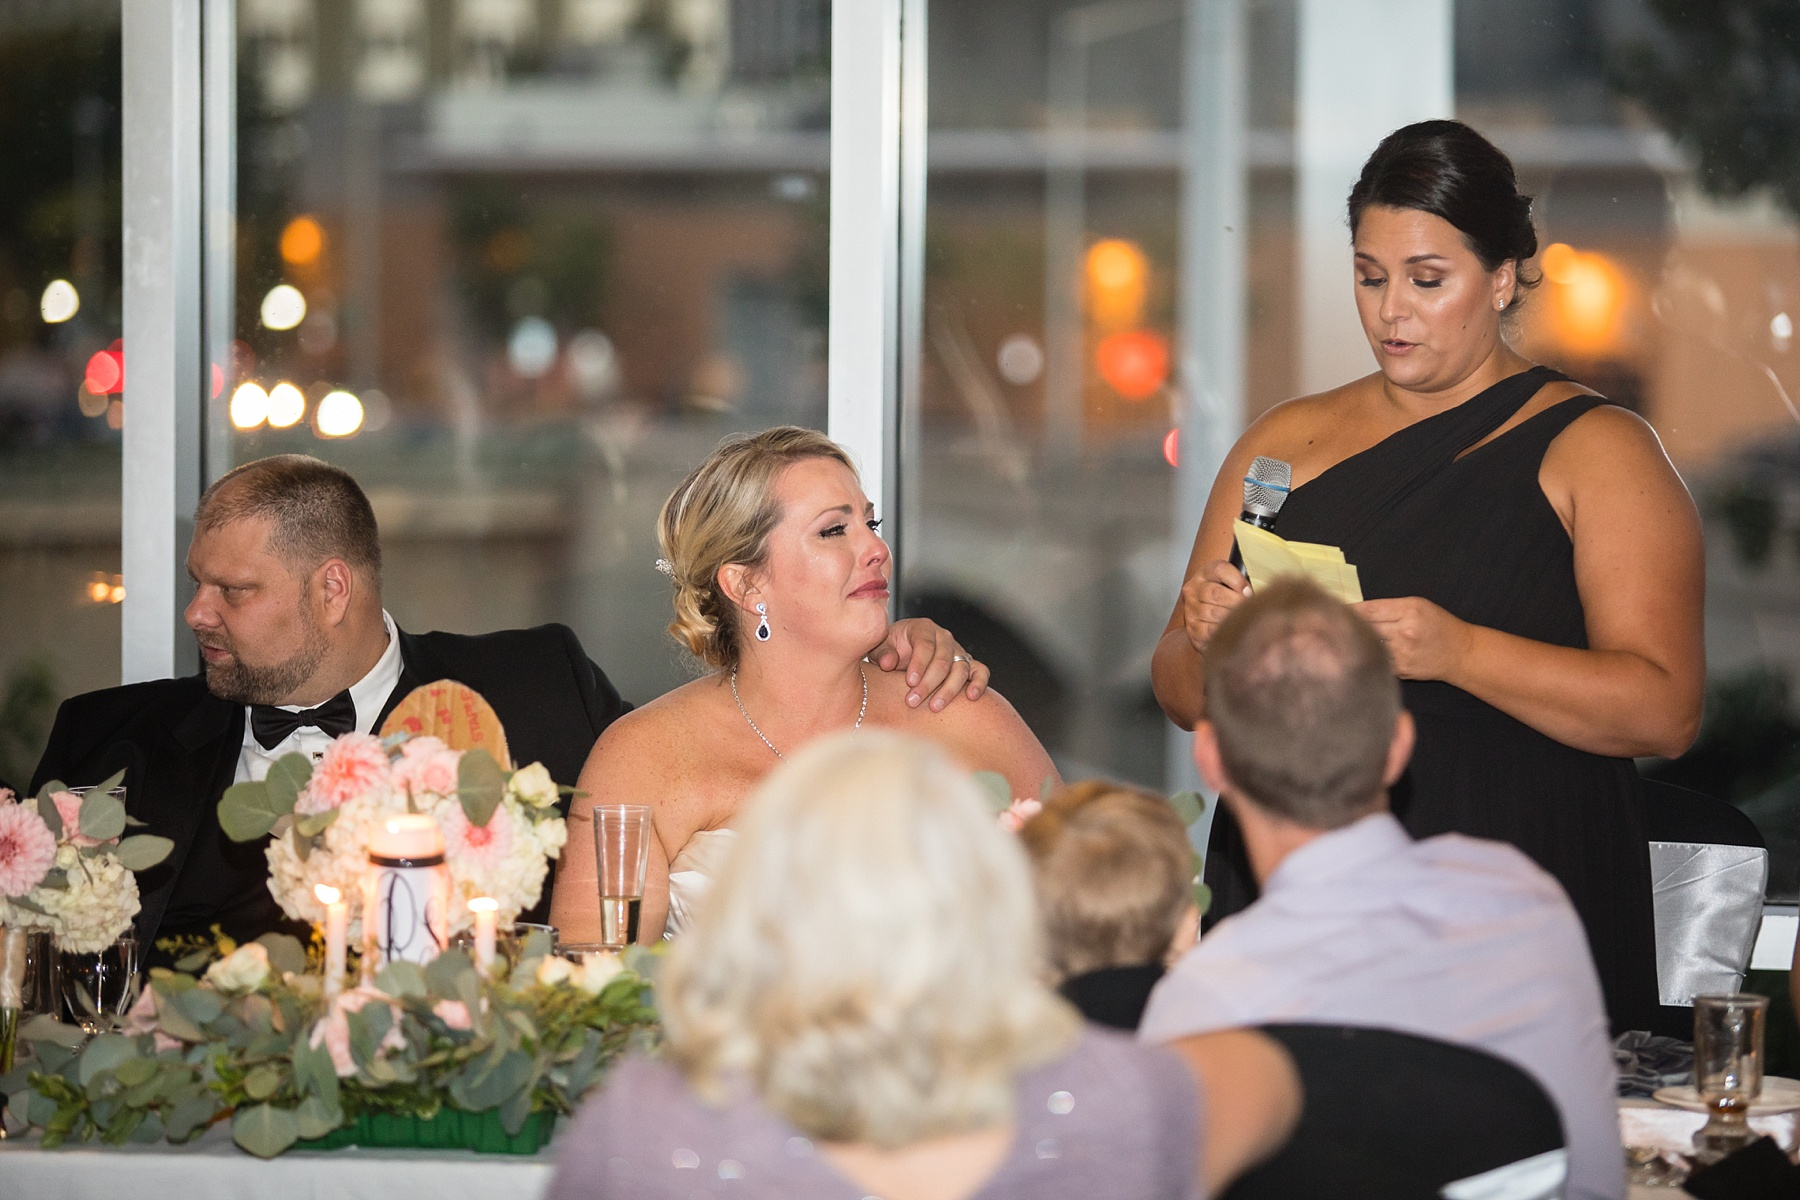 Brandon_Shafer_Photography_Brad_Sarah_Downtown_Grand_Rapids_Wedding_0054.jpg